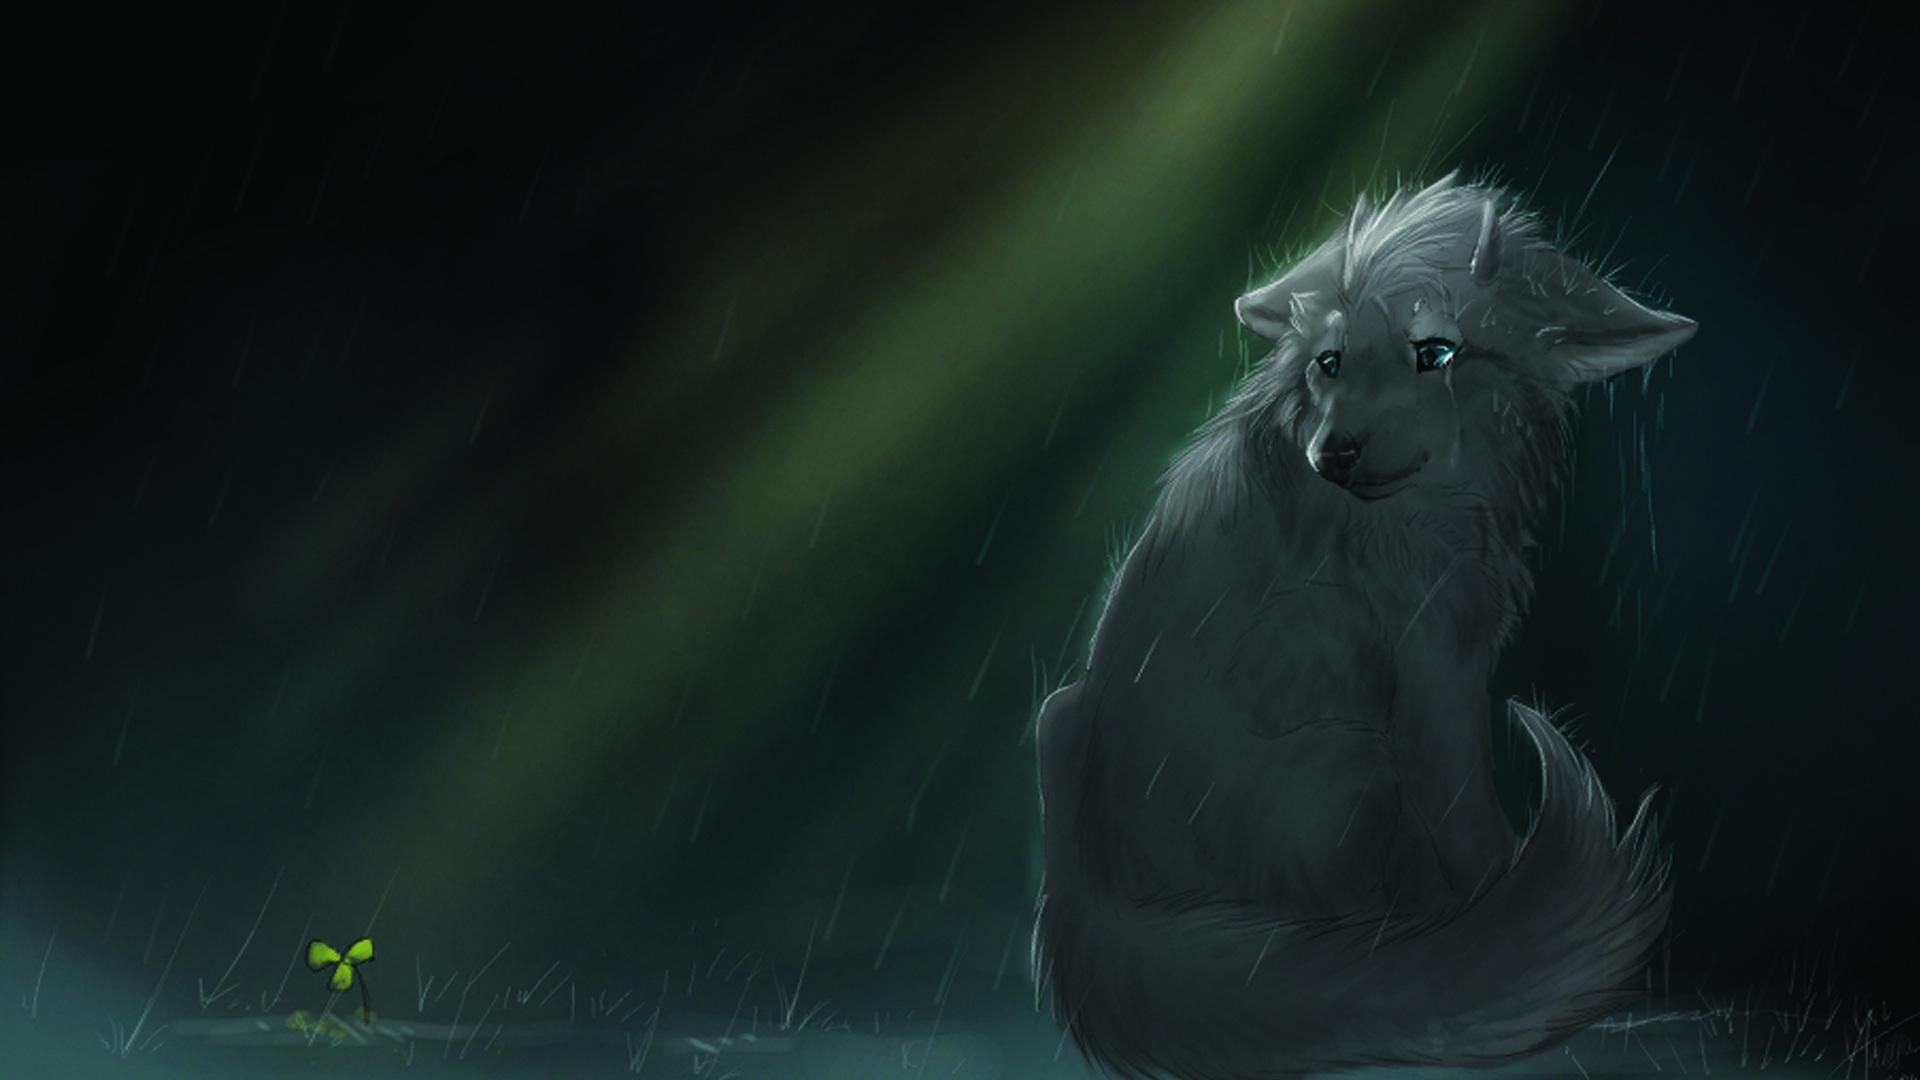 1920x1080 Anime Wolf Wallpaper Page 1 | Anime Wolves | Anime wolf, Wolf ...